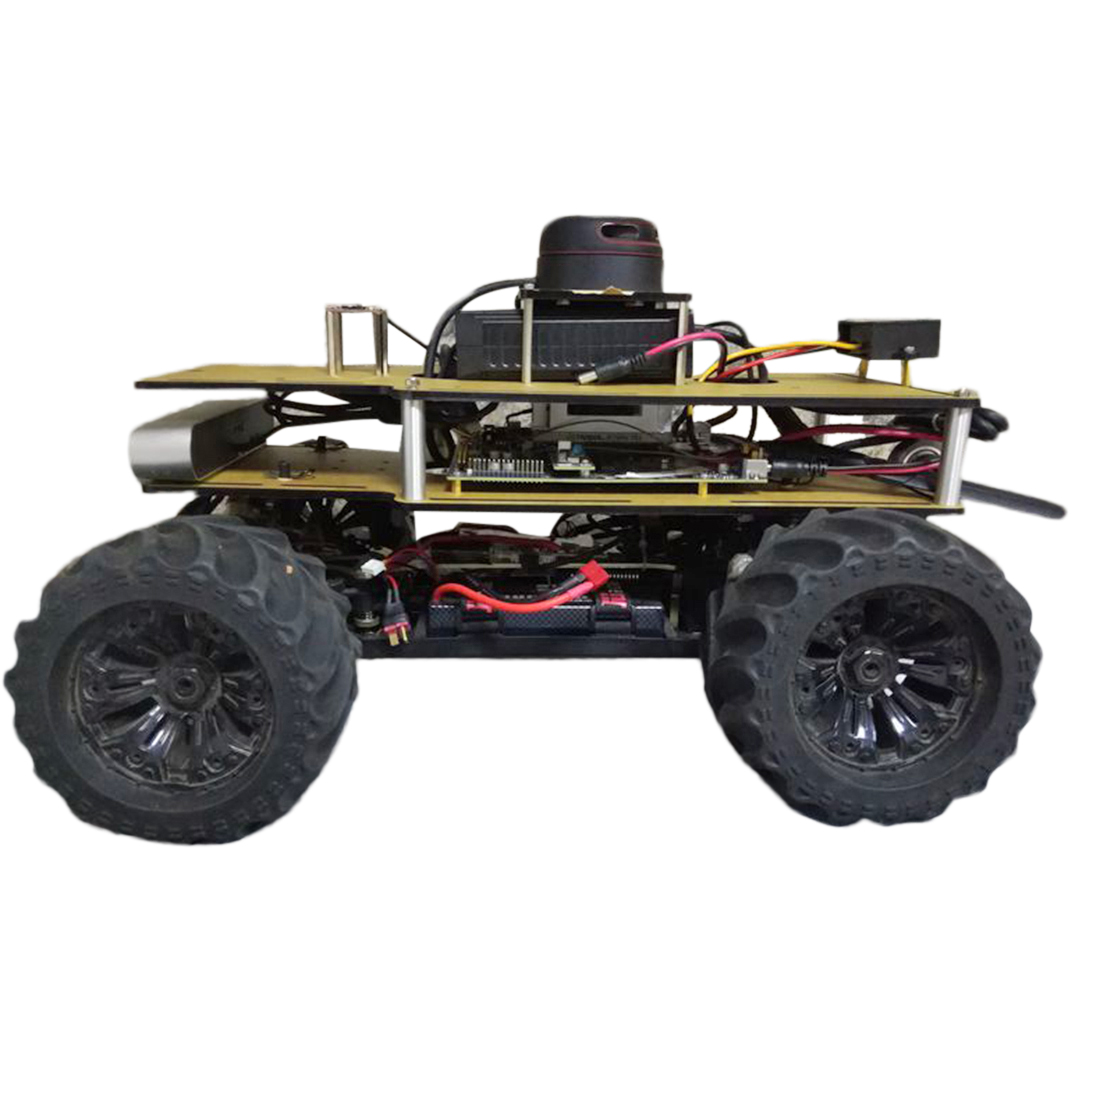 1/10 Programmable ROS Robot Ackerman Suspension Autopilot Ride Kit For Jetson TX2 High Tech Toy - Outdoor/Indoor Basic Version